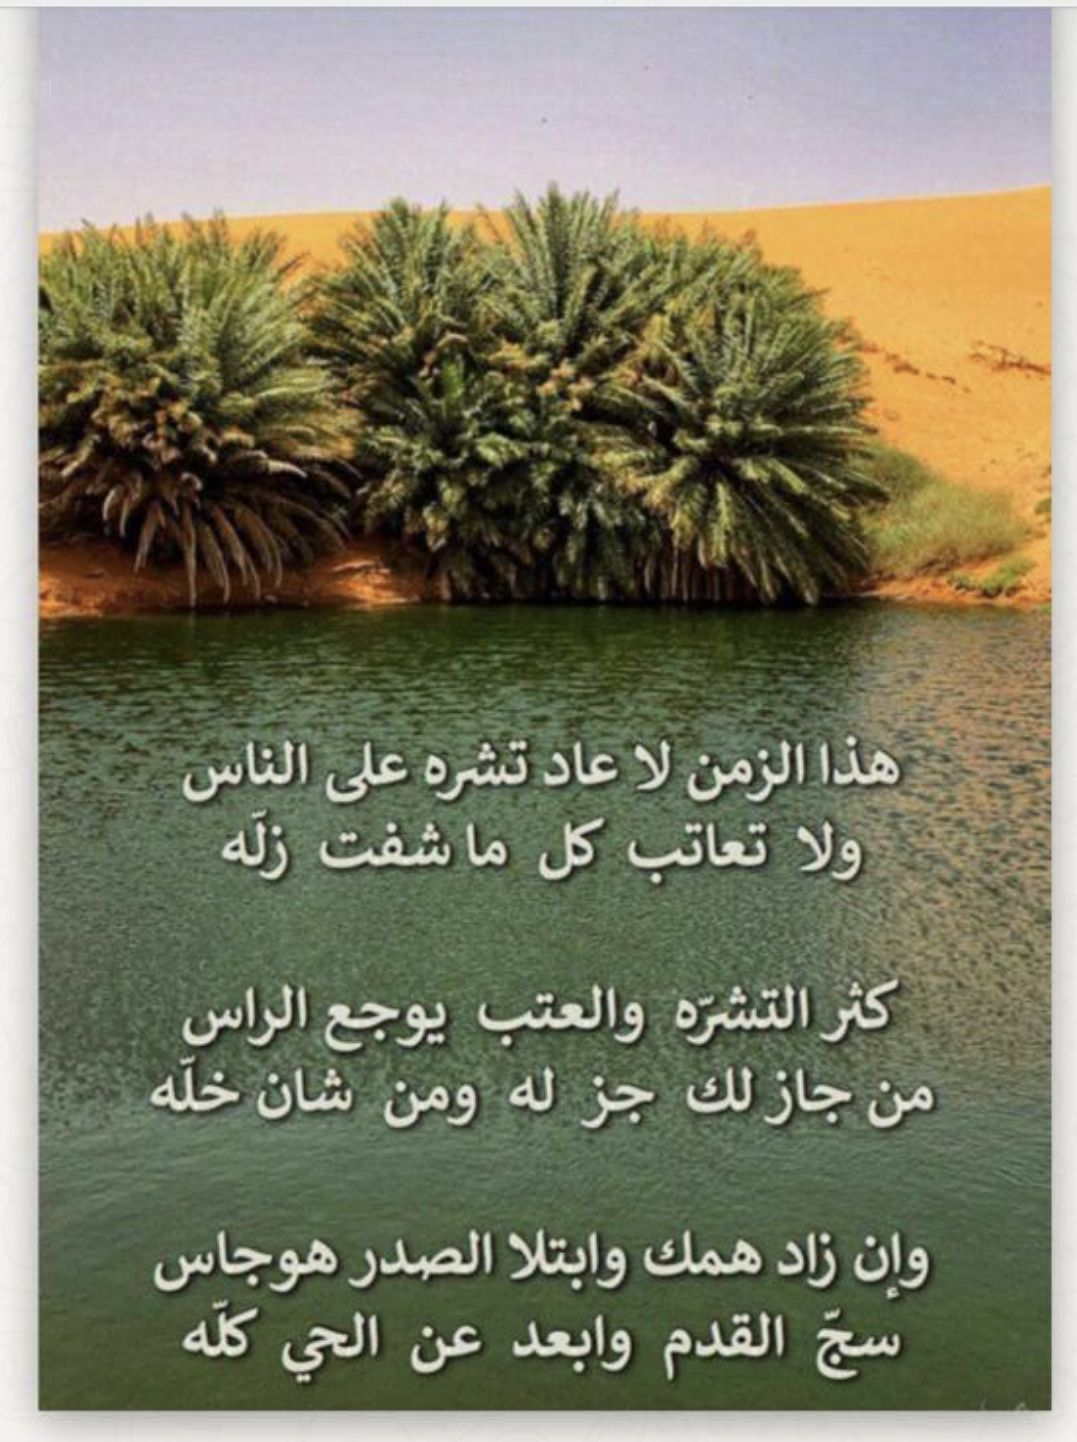 Pin By Hnodss Hnodo On طبيعة Places To Visit Wise Places